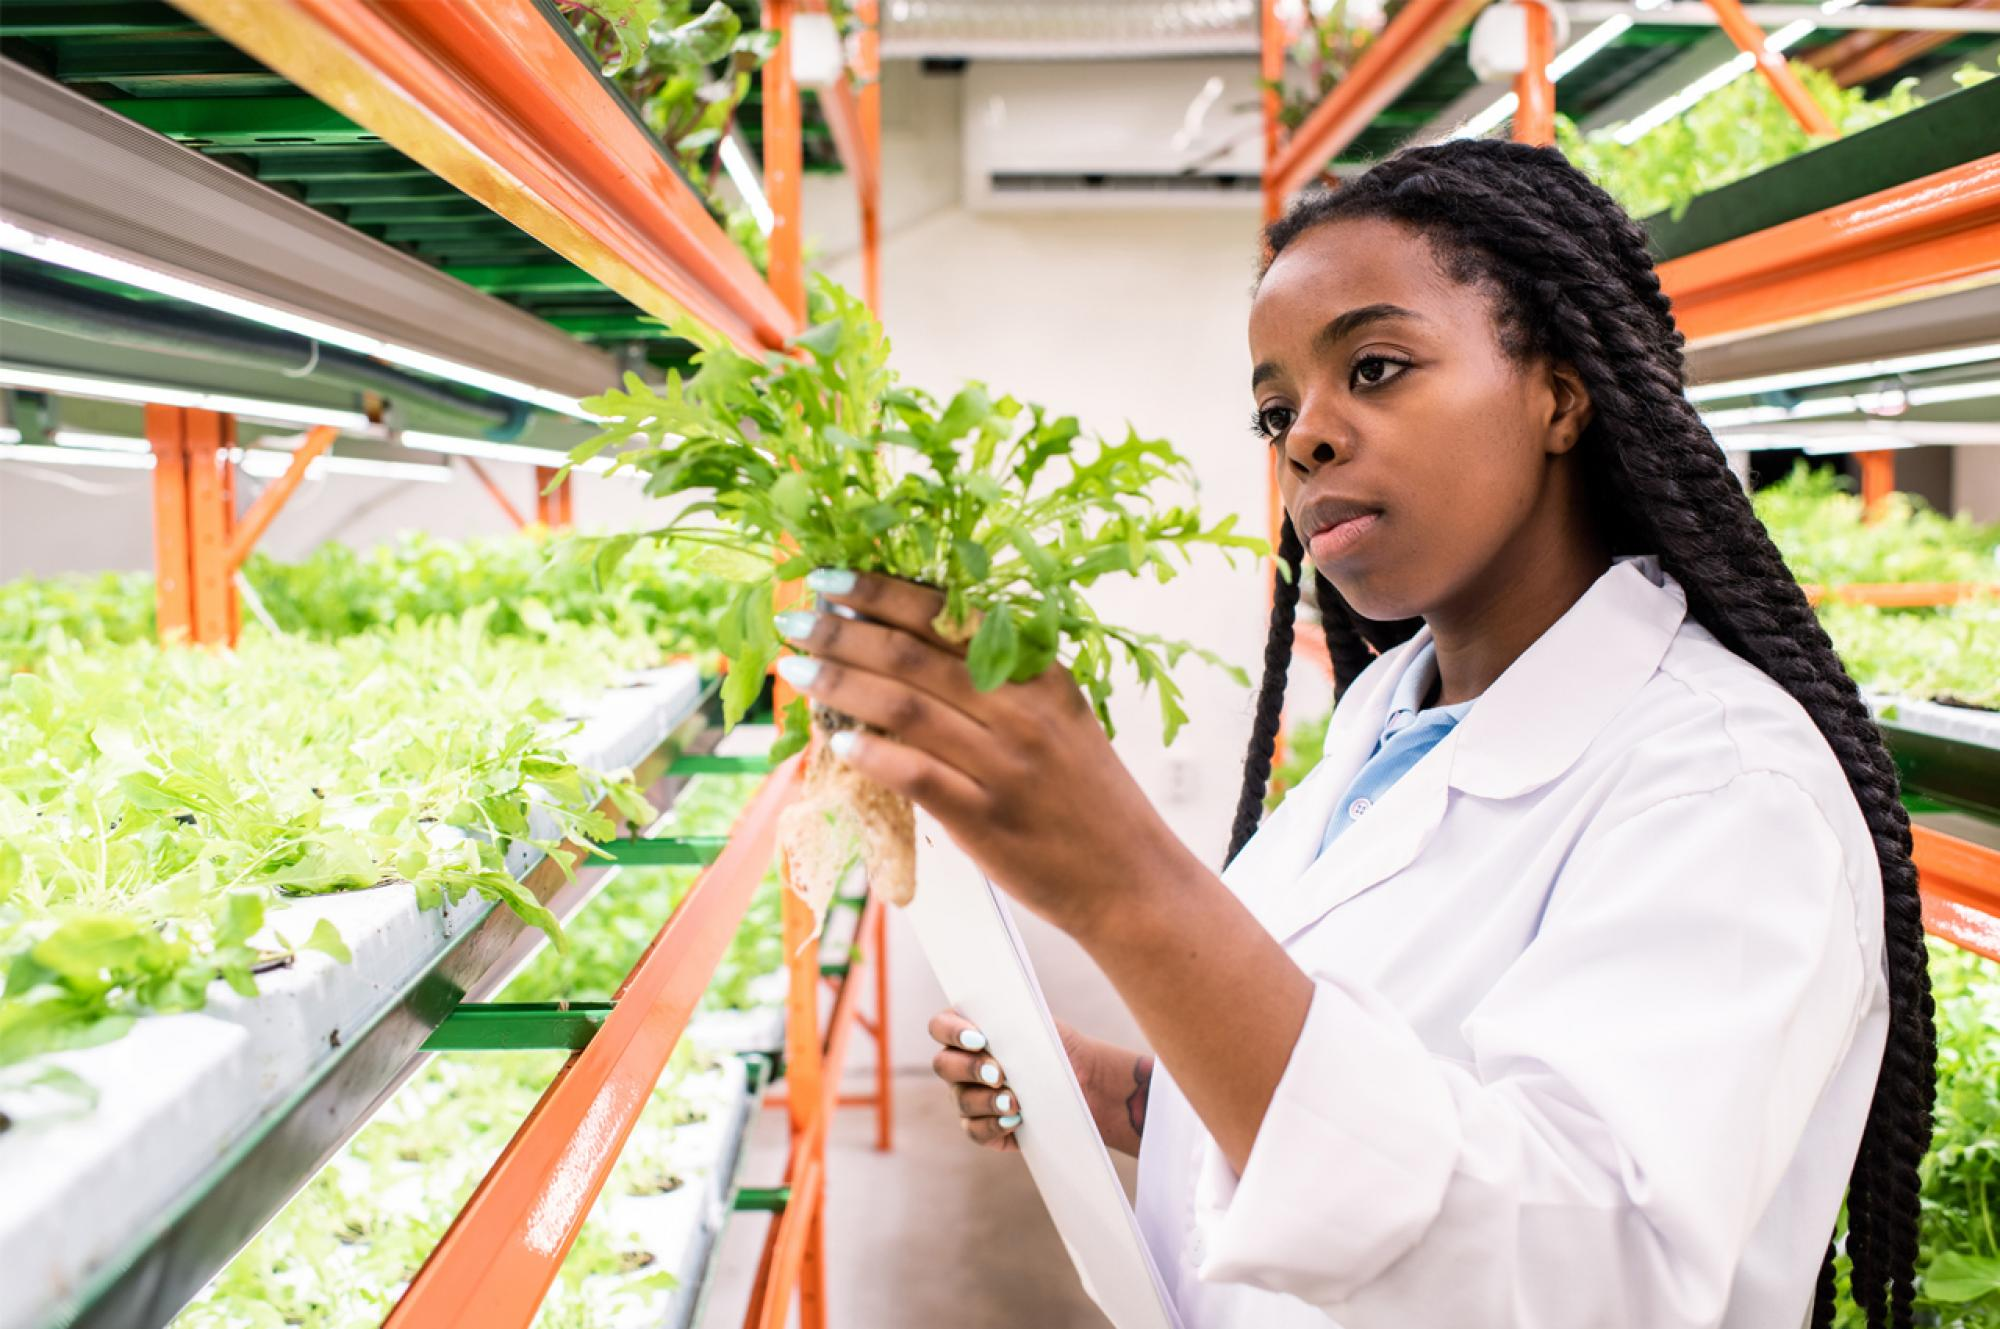 A student examines a plant in a lab.